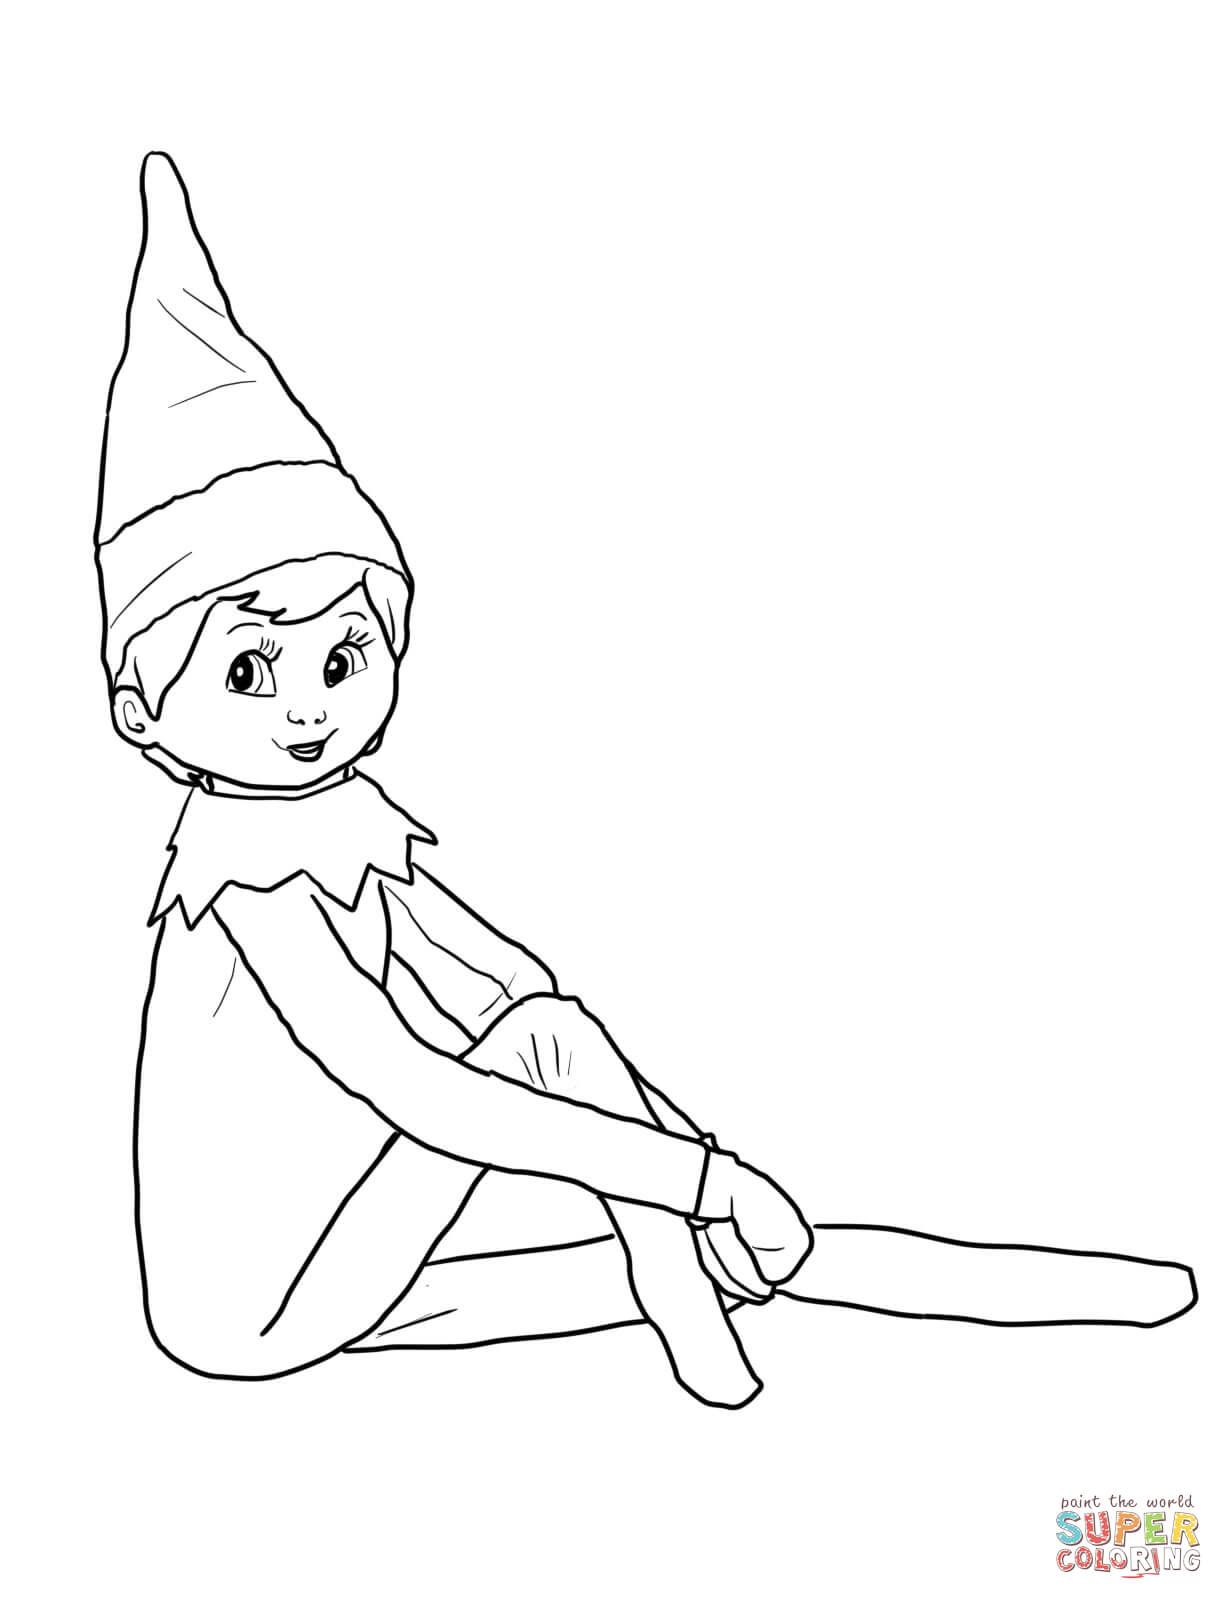 Elf On The Shelf Coloring Page From Elf On The Shelf Category Select From Printable